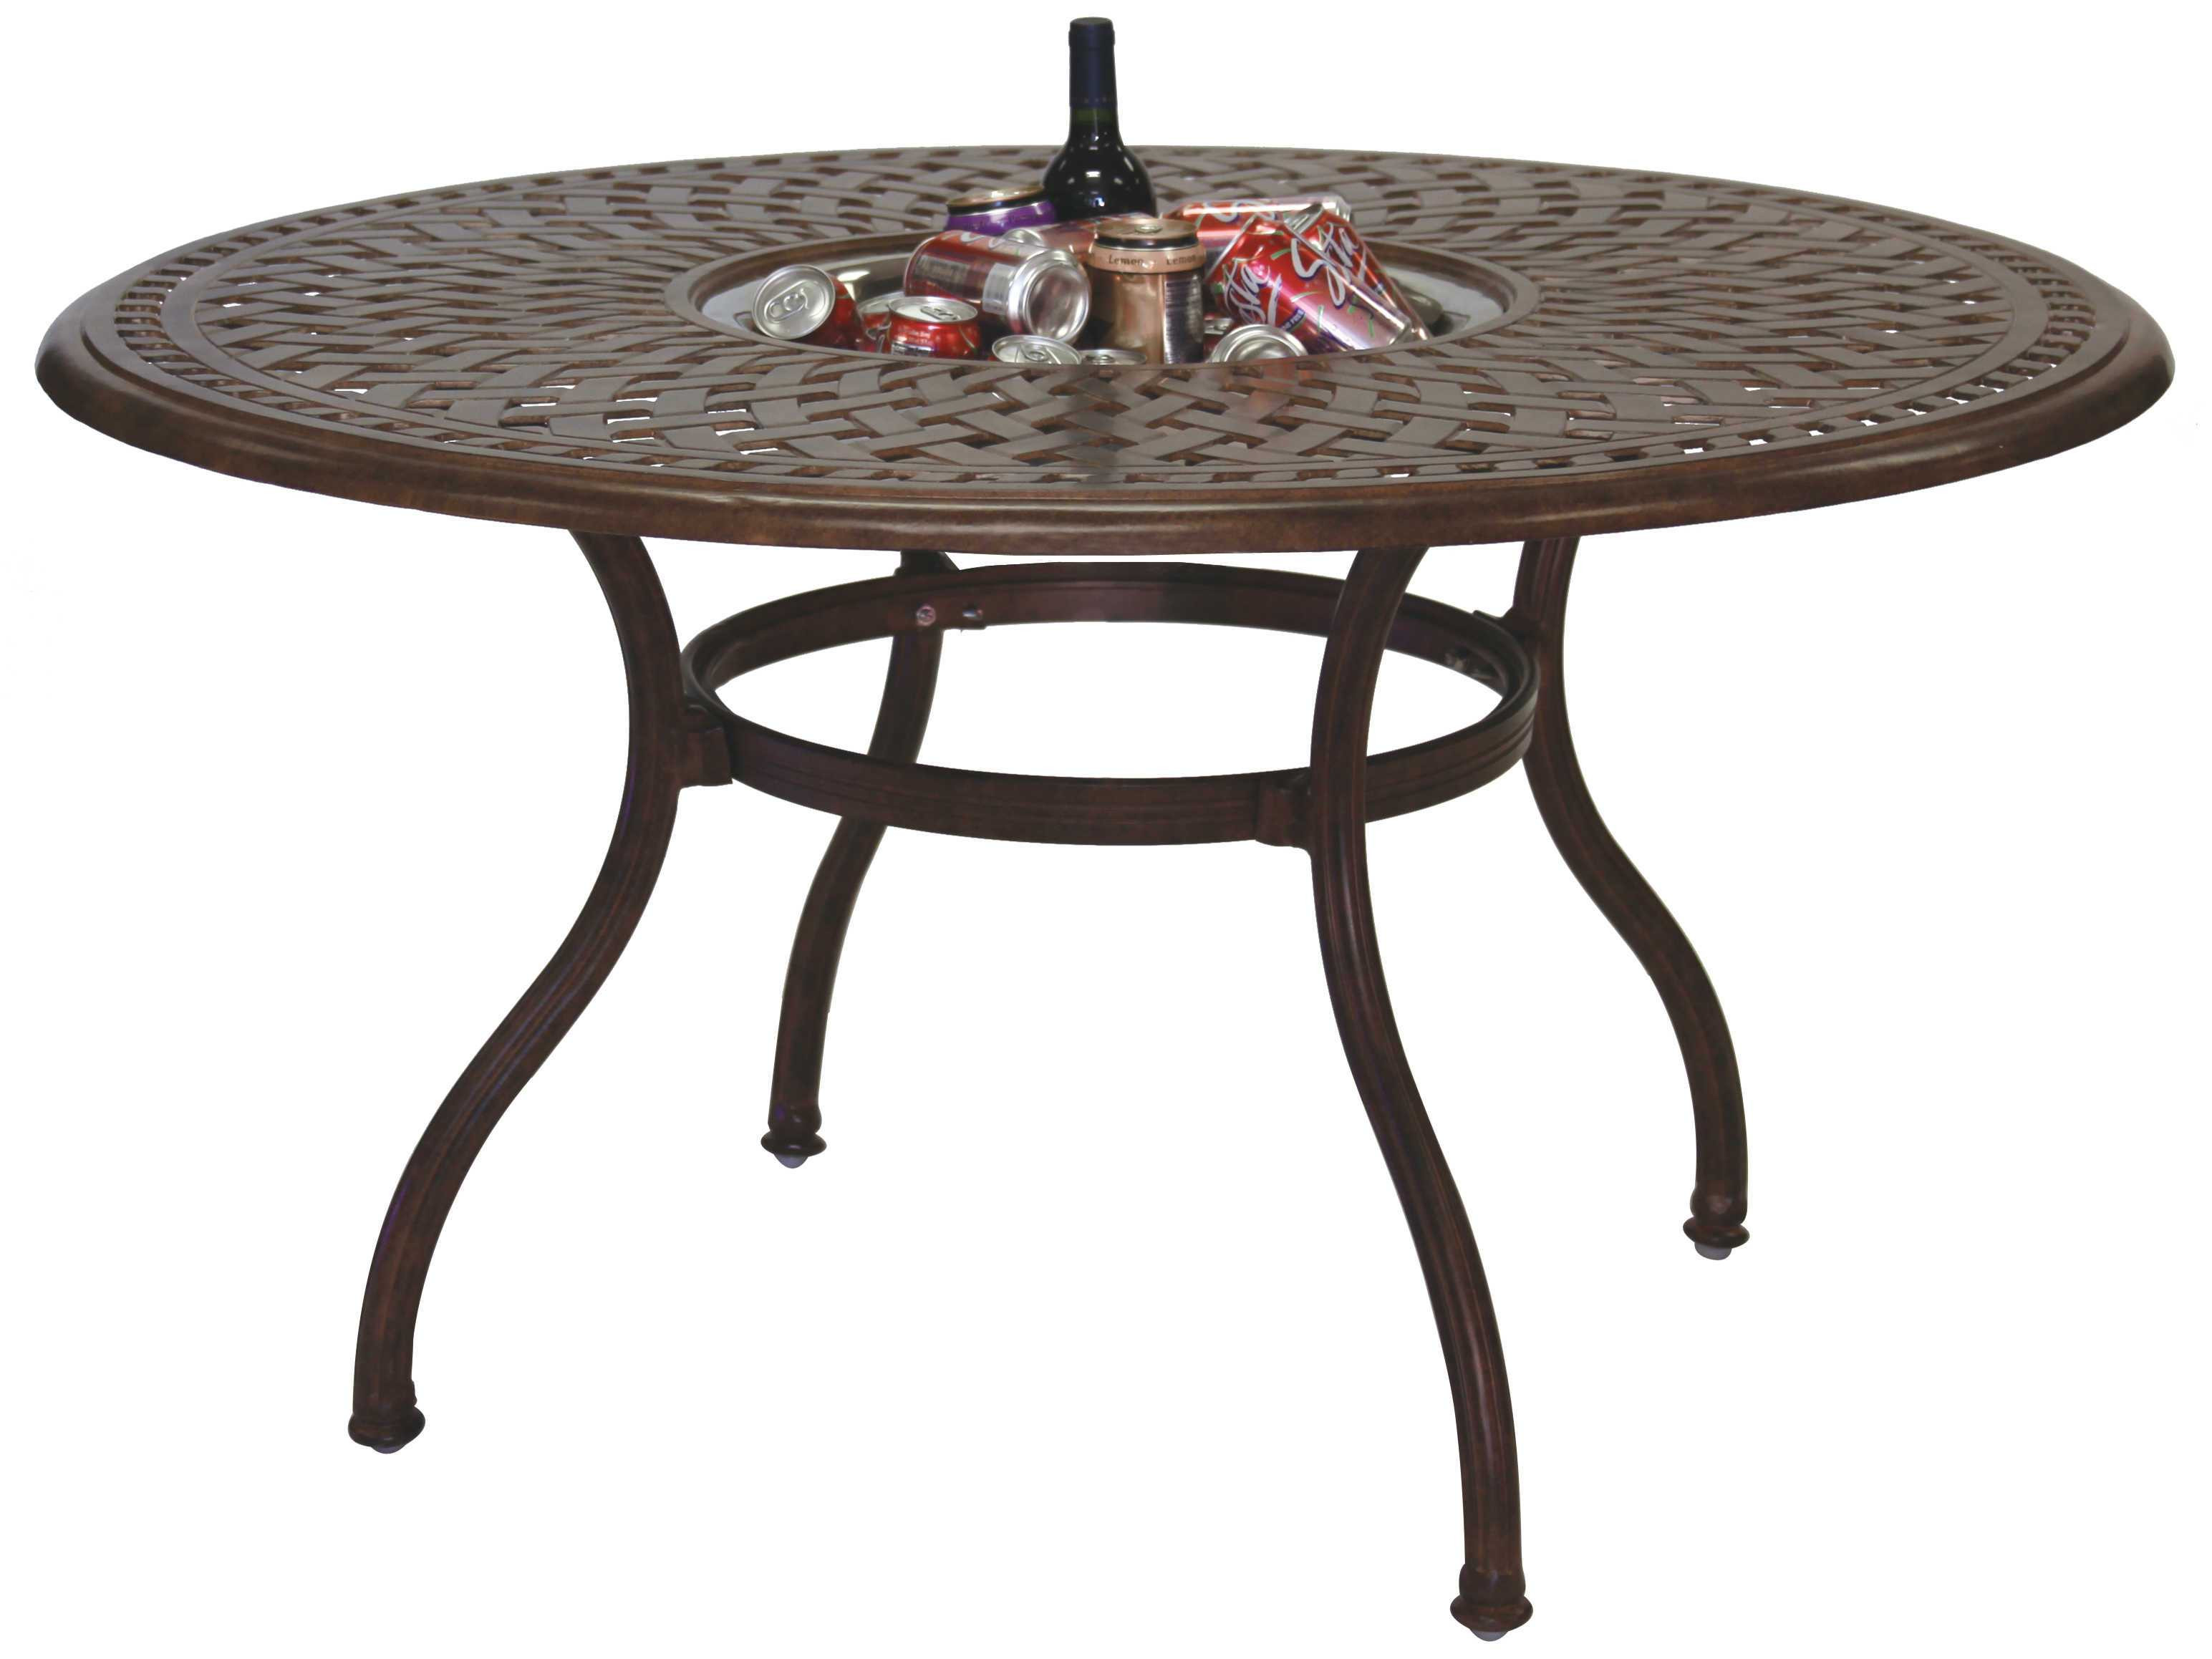 Best ideas about Round Patio Dining Table . Save or Pin Darlee Outdoor Living Series 60 Cast Aluminum 52 Round Now.